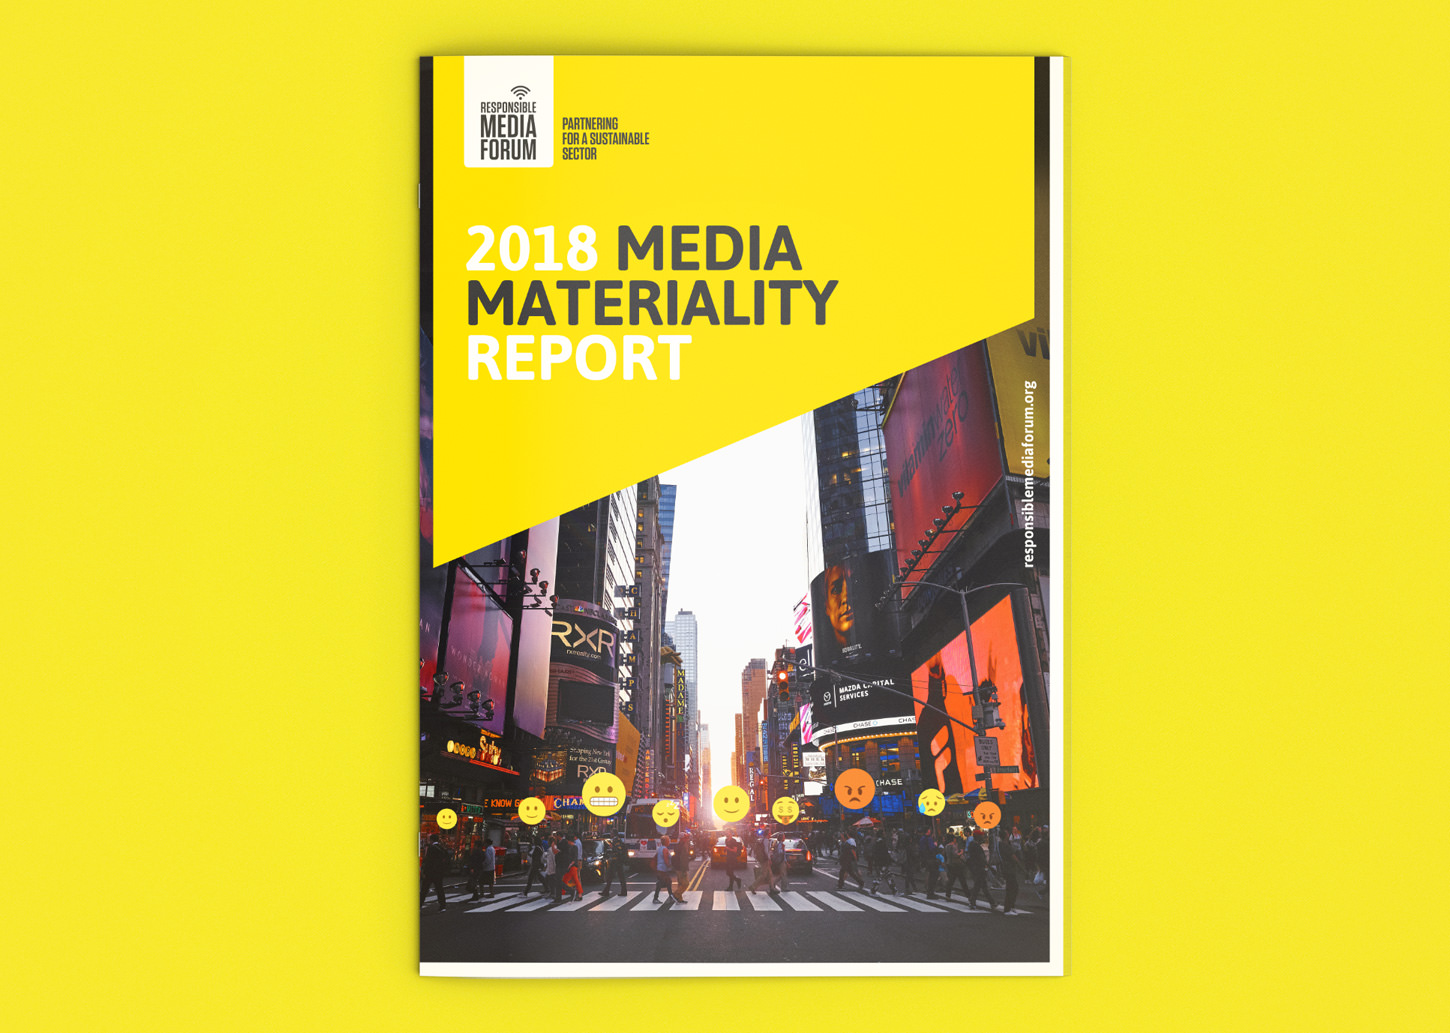 Media Materiality Report